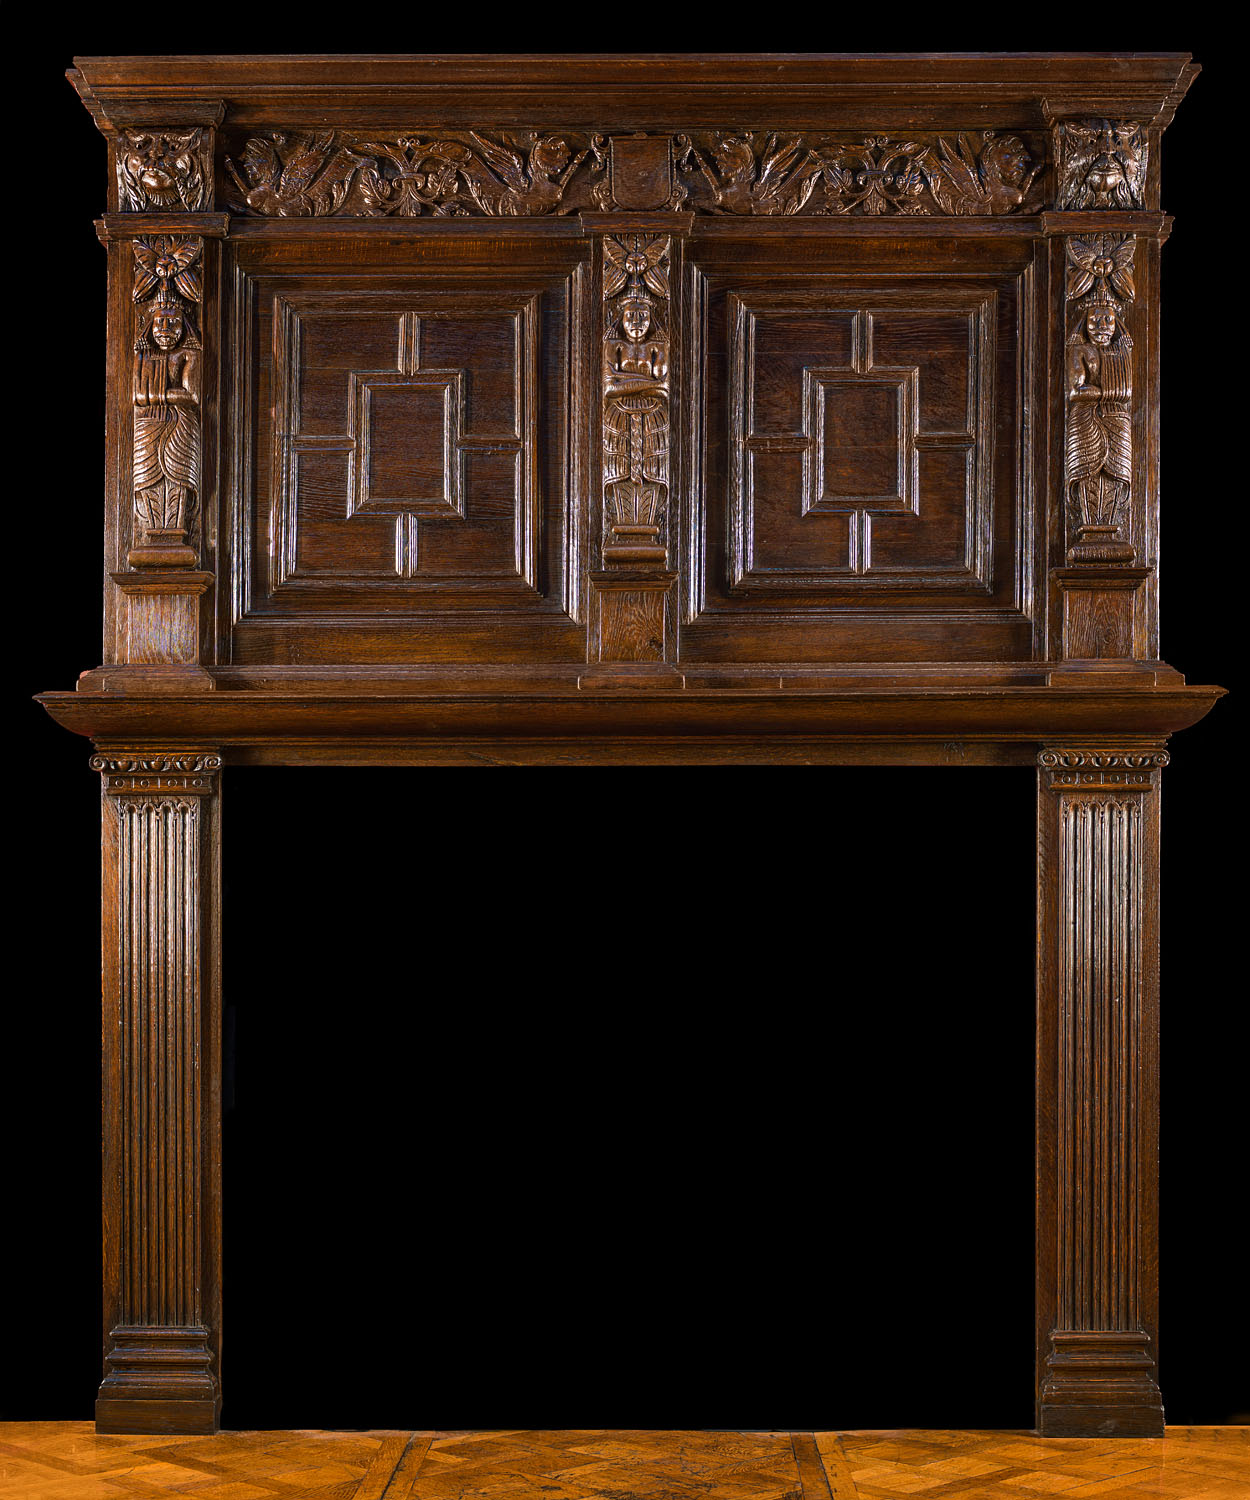 A large antique Jacobean style oak fireplace surround & overmantel